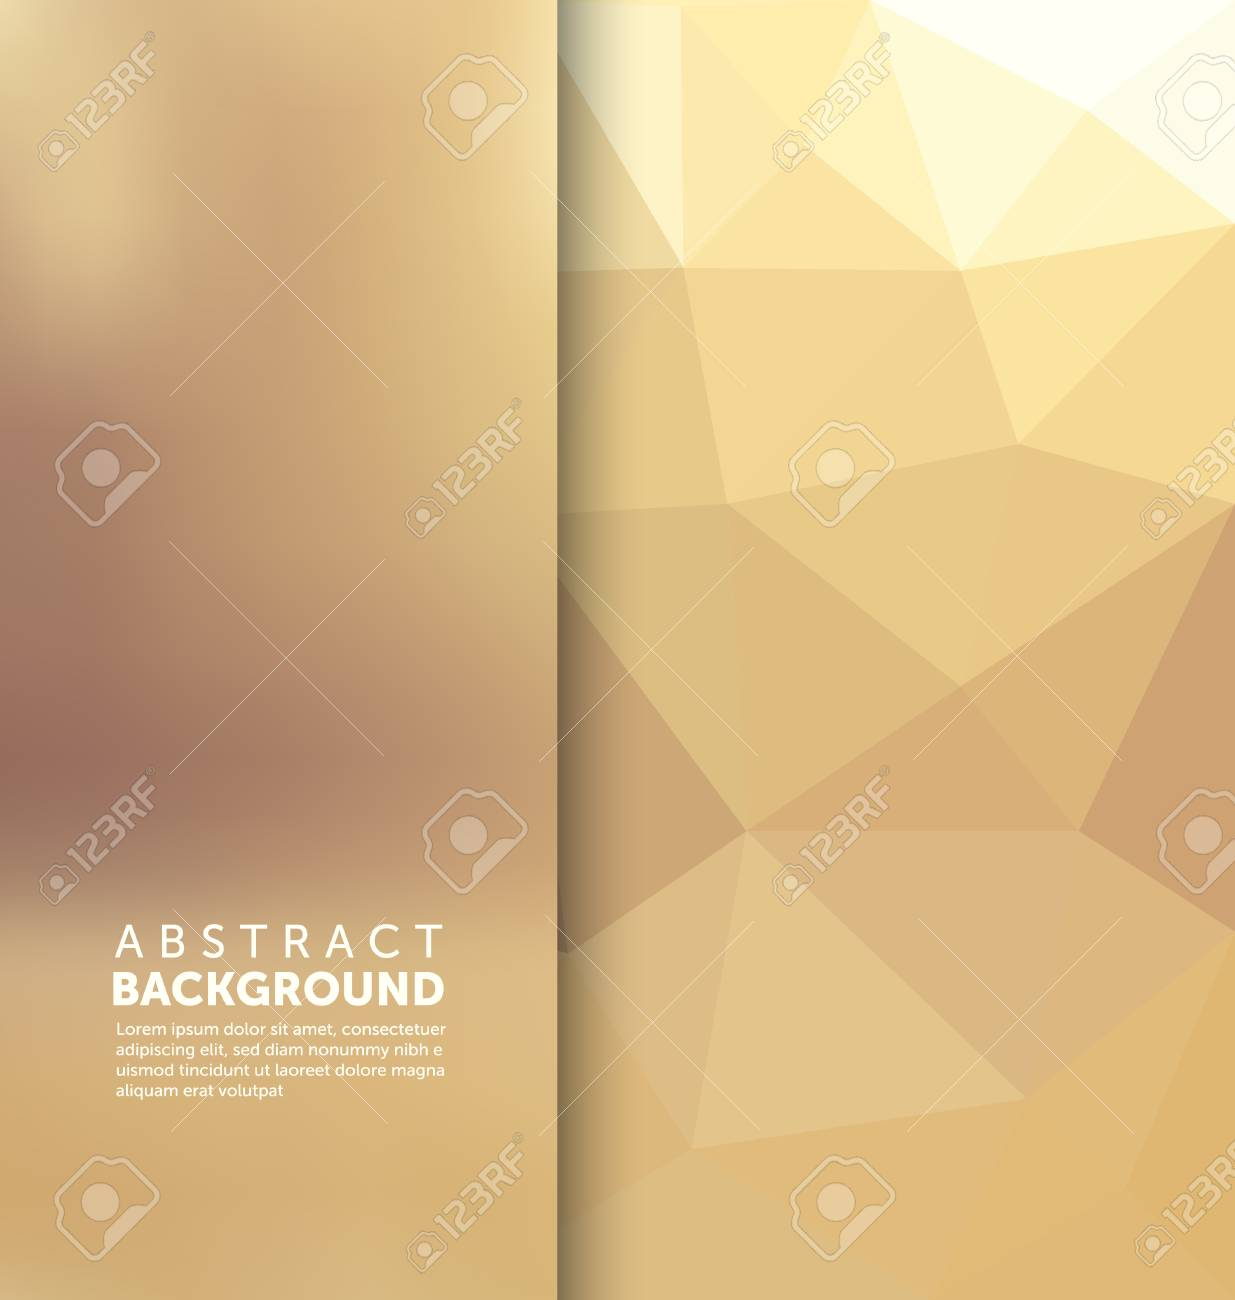 Abstract Background - Triangle and blurred banner design - 45168483